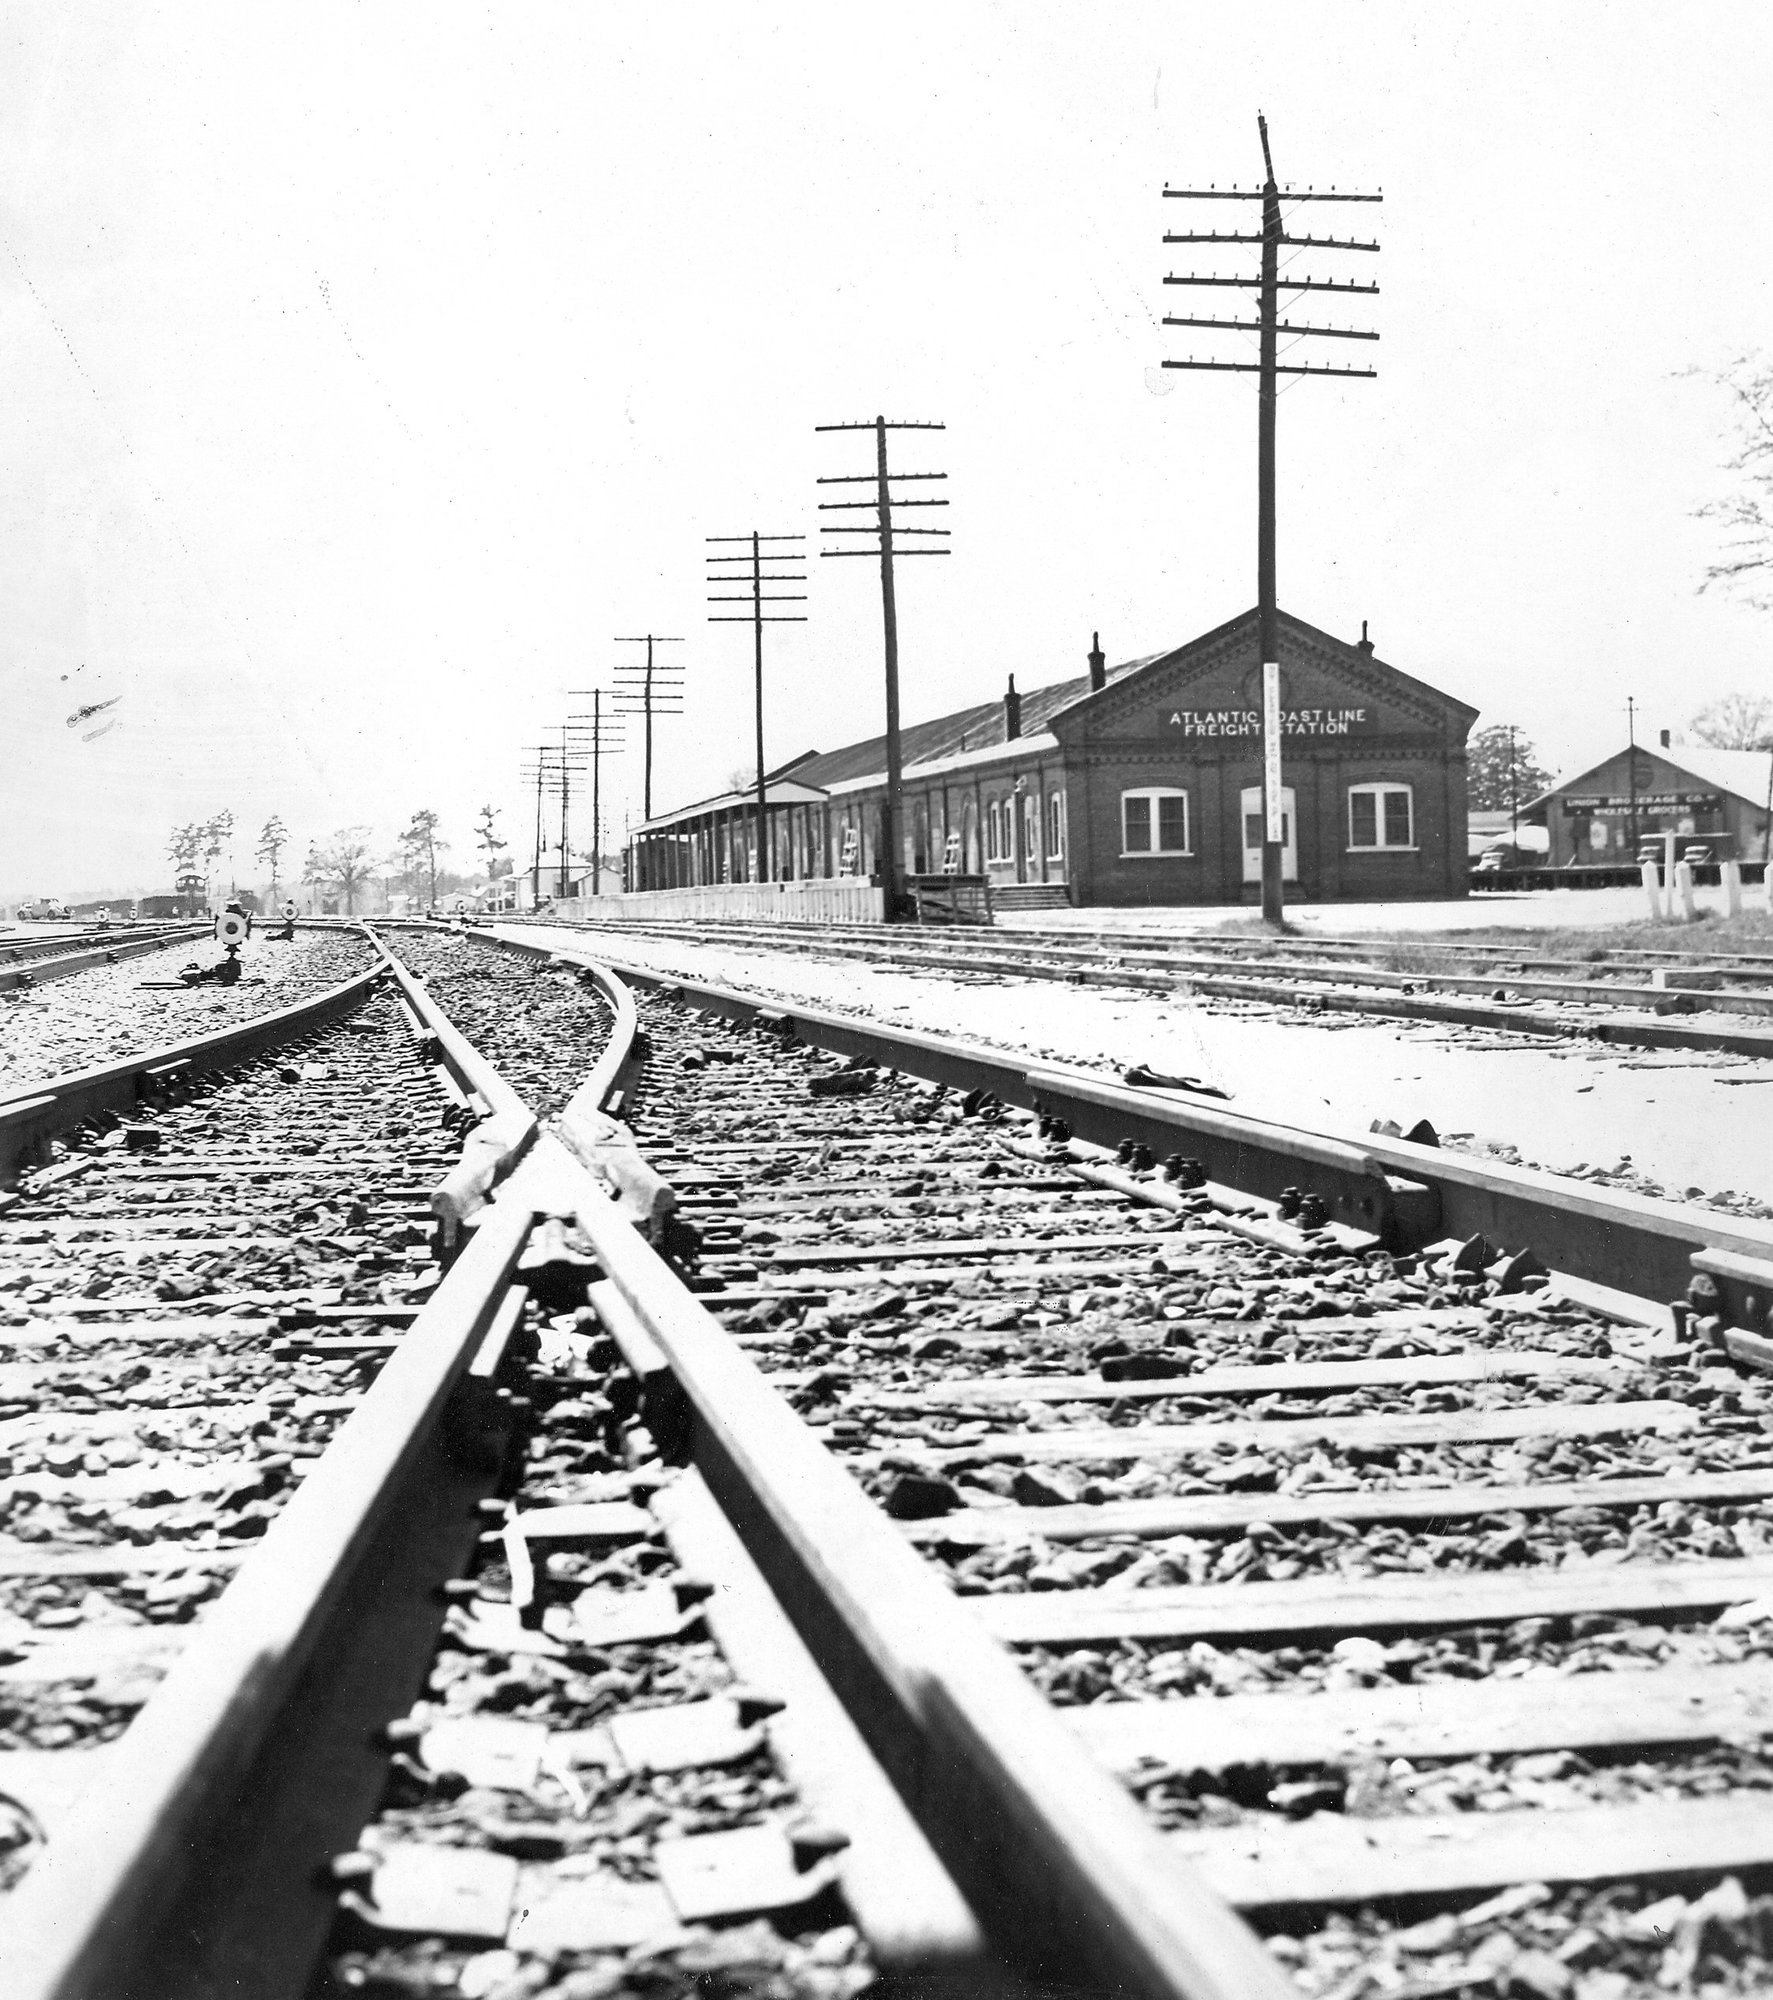 The freight station was used for agriculture, truck, dairy, livestock and manufacturing shipping.